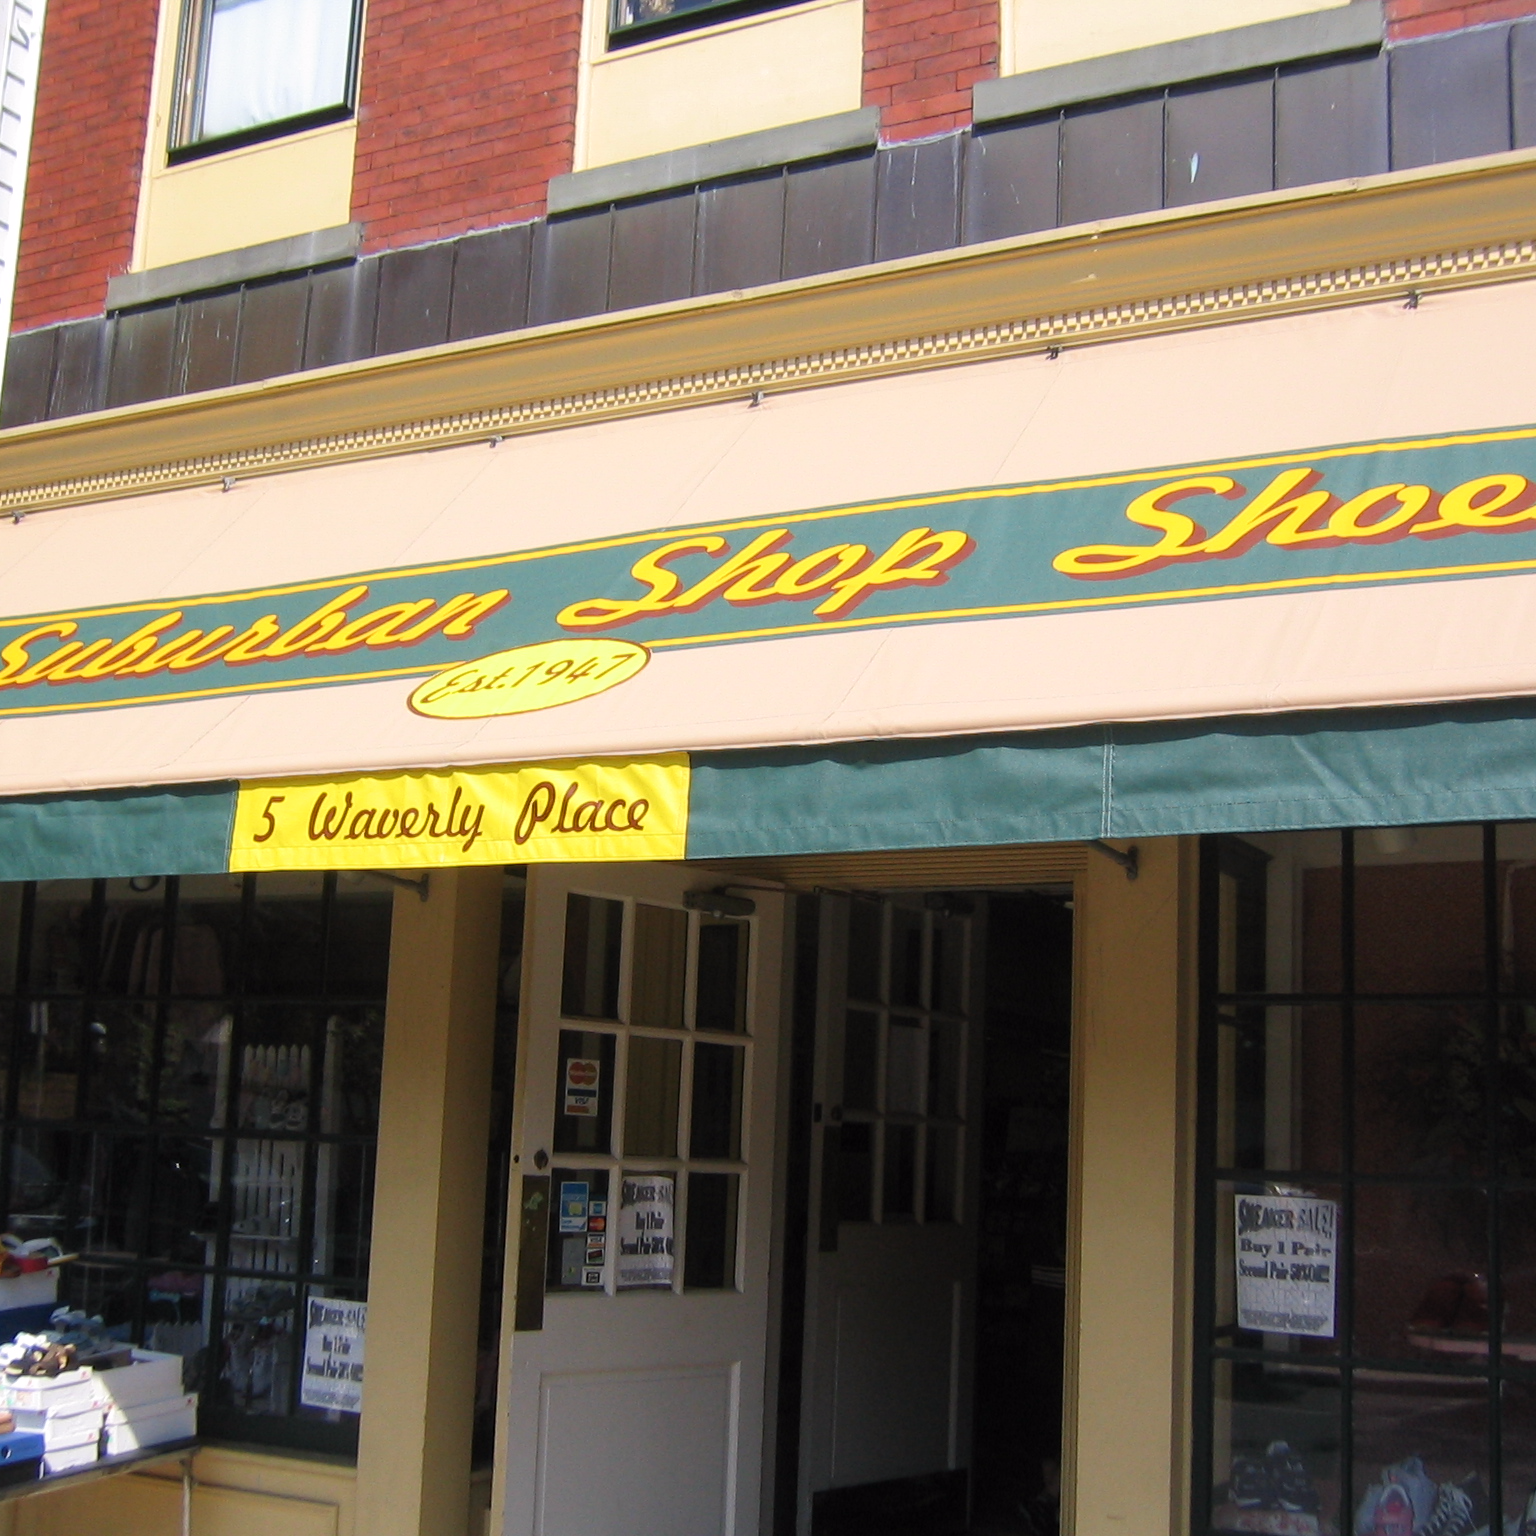 Suburban Shoes in New Jersey